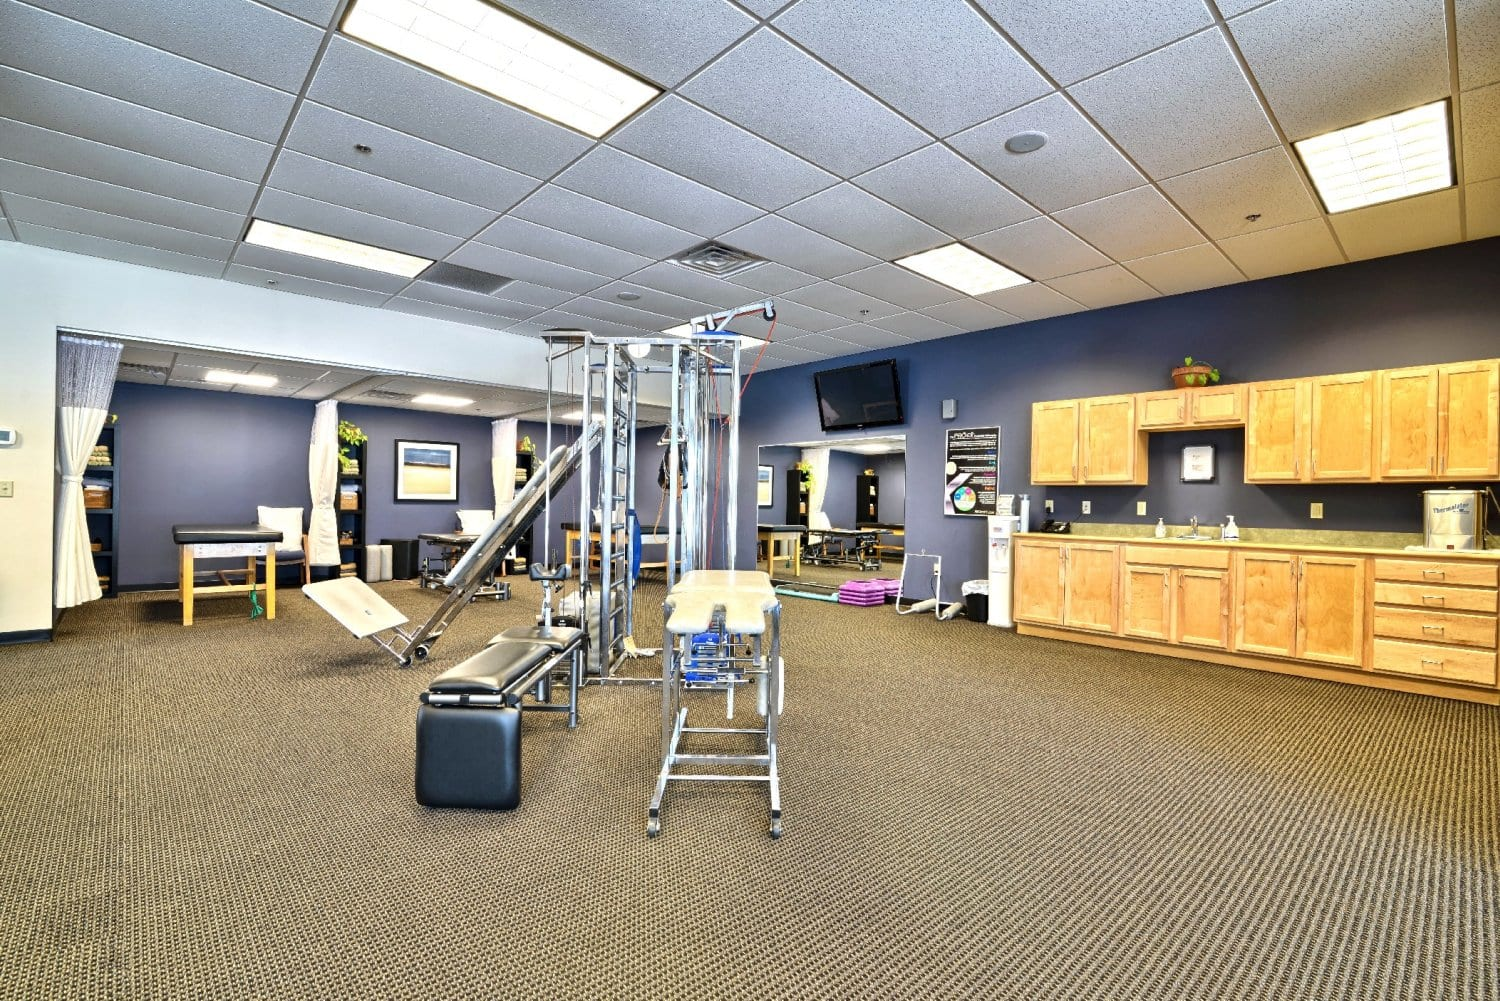 An image of the interior of our physical therapy clinic in Somersworth, New Hampshire. This image showcases a clean facility and equipment.